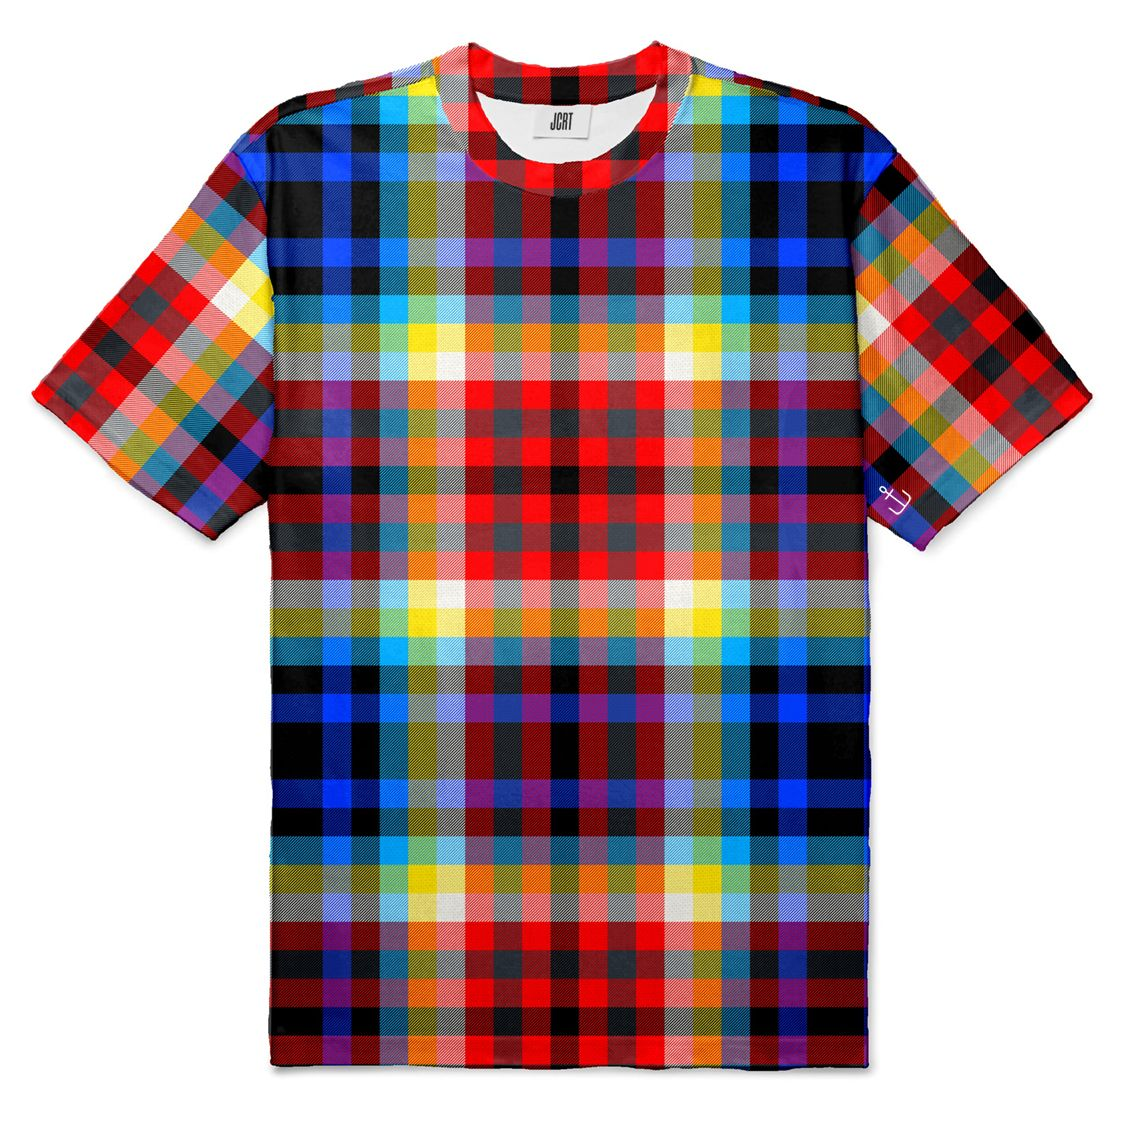 The Tron Plaid T-Shirt